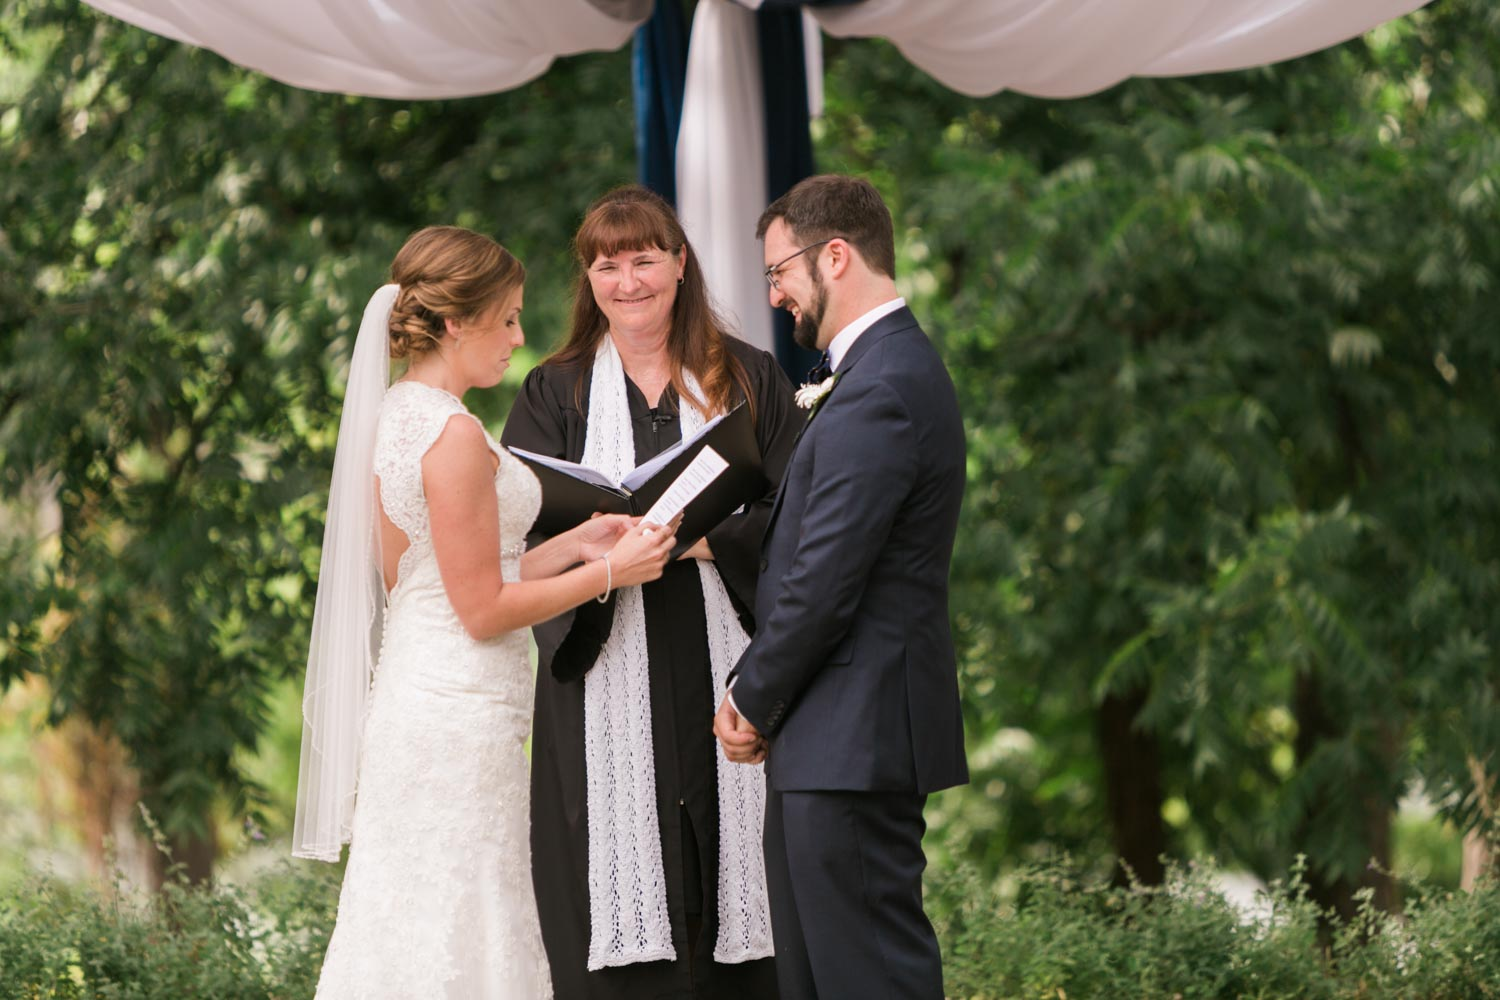 Bride reading vows to smiling groom, with wedding officiant listening in background